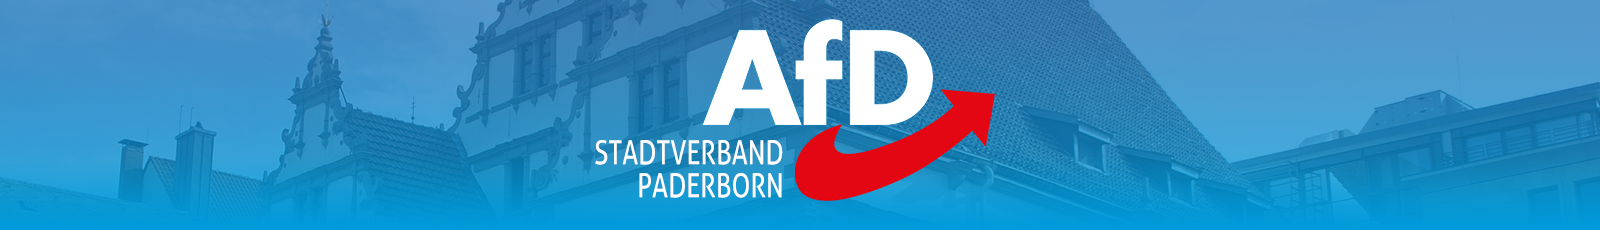 AfD Stadtverband Paderborn